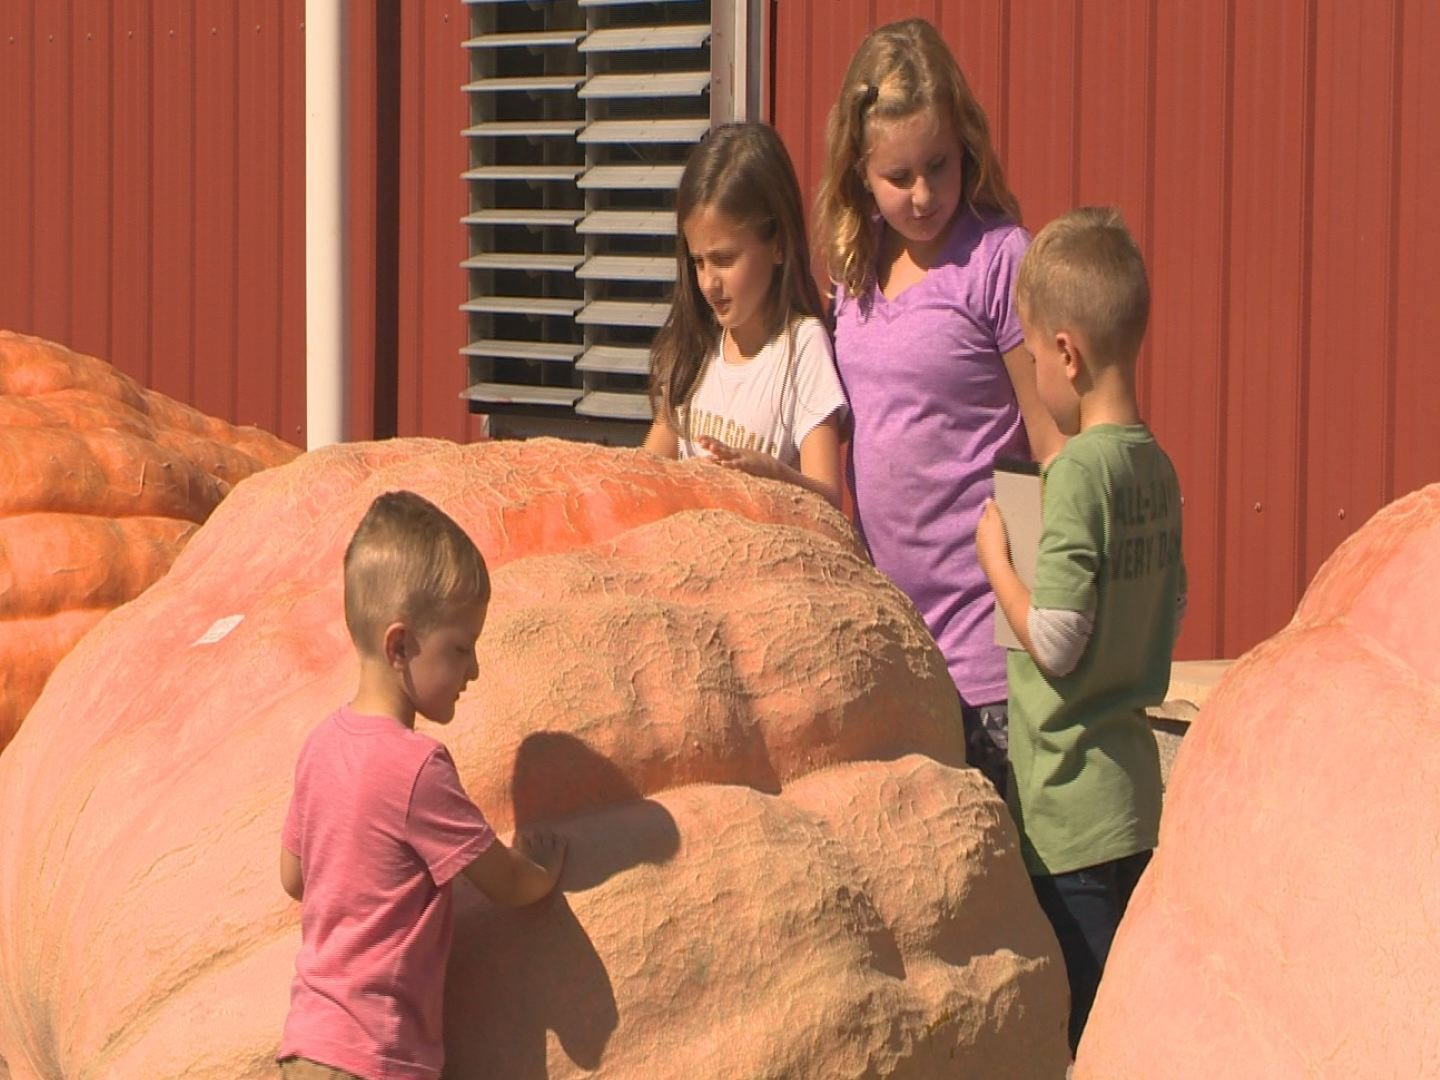 Pumpkin weigh off in canfield is world record setting event news weather sports for for Parks garden center canfield ohio